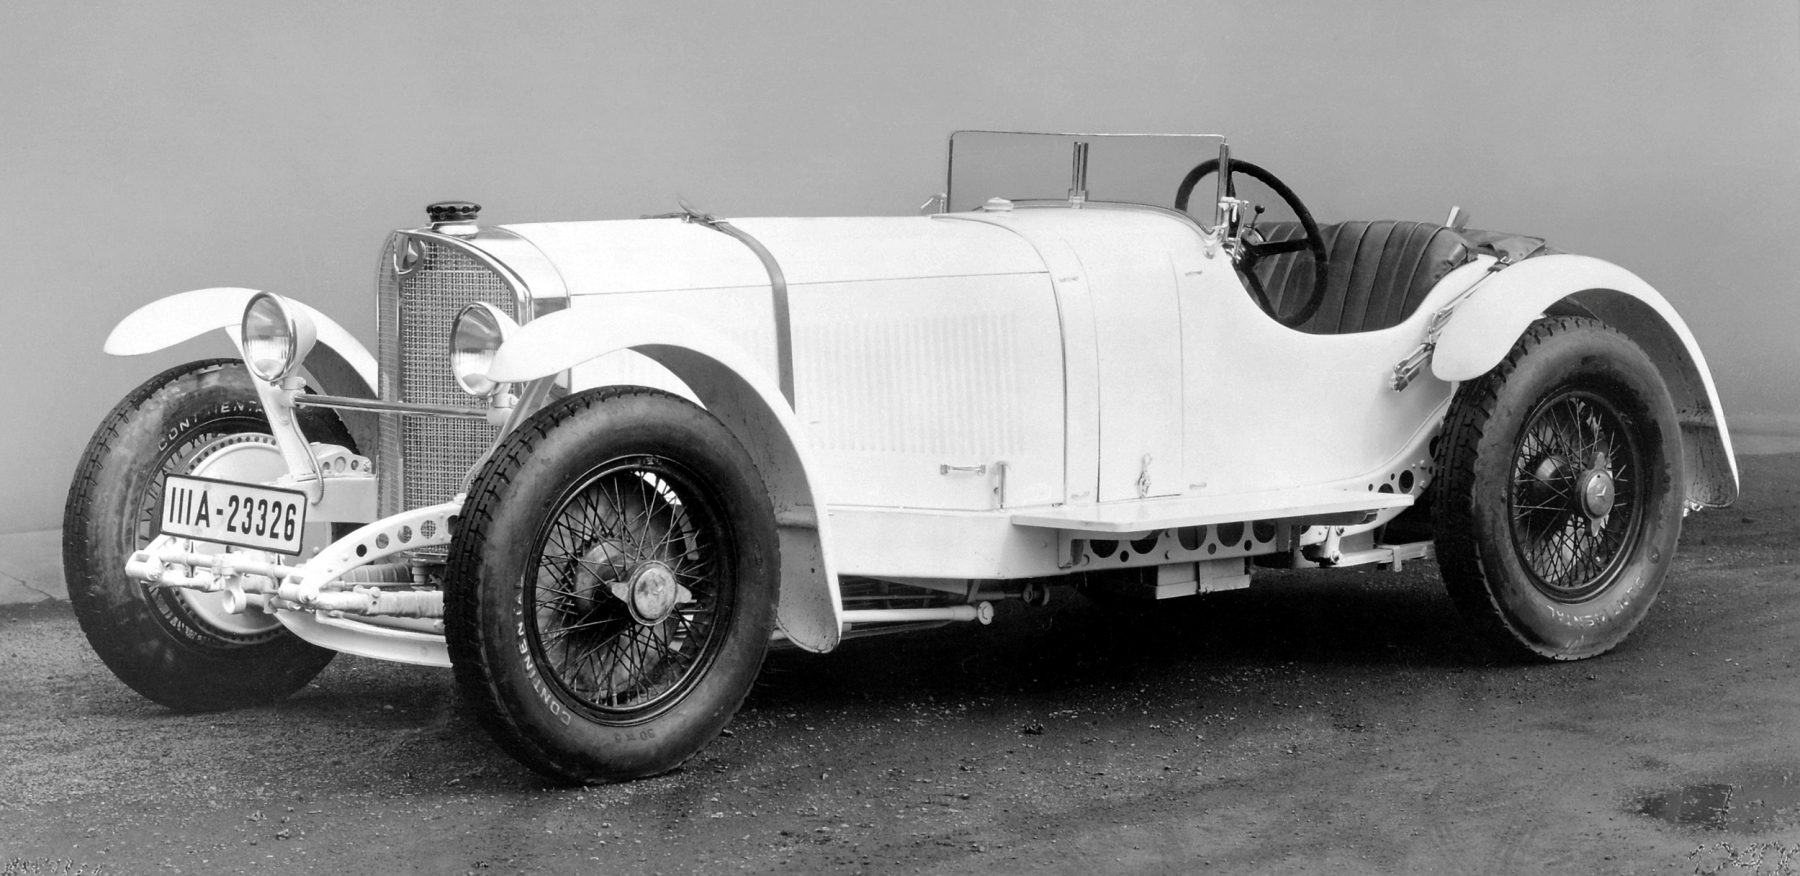 The legendary Mille Miglia 90 years ago - Caracciola won in 1931 in a Mercedes-Benz SSKL